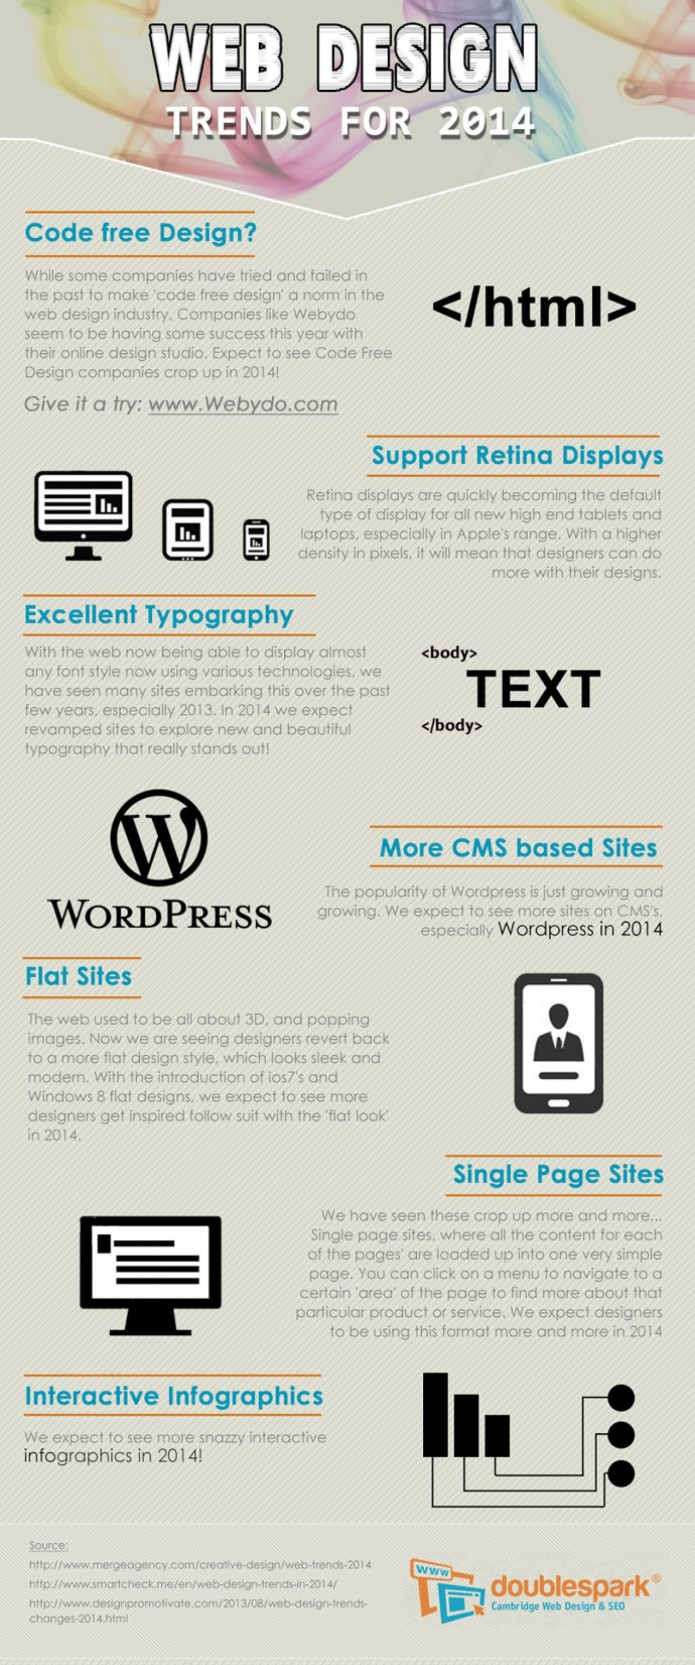 web-design-trends-for-2014_52608d1de0b45_w1500